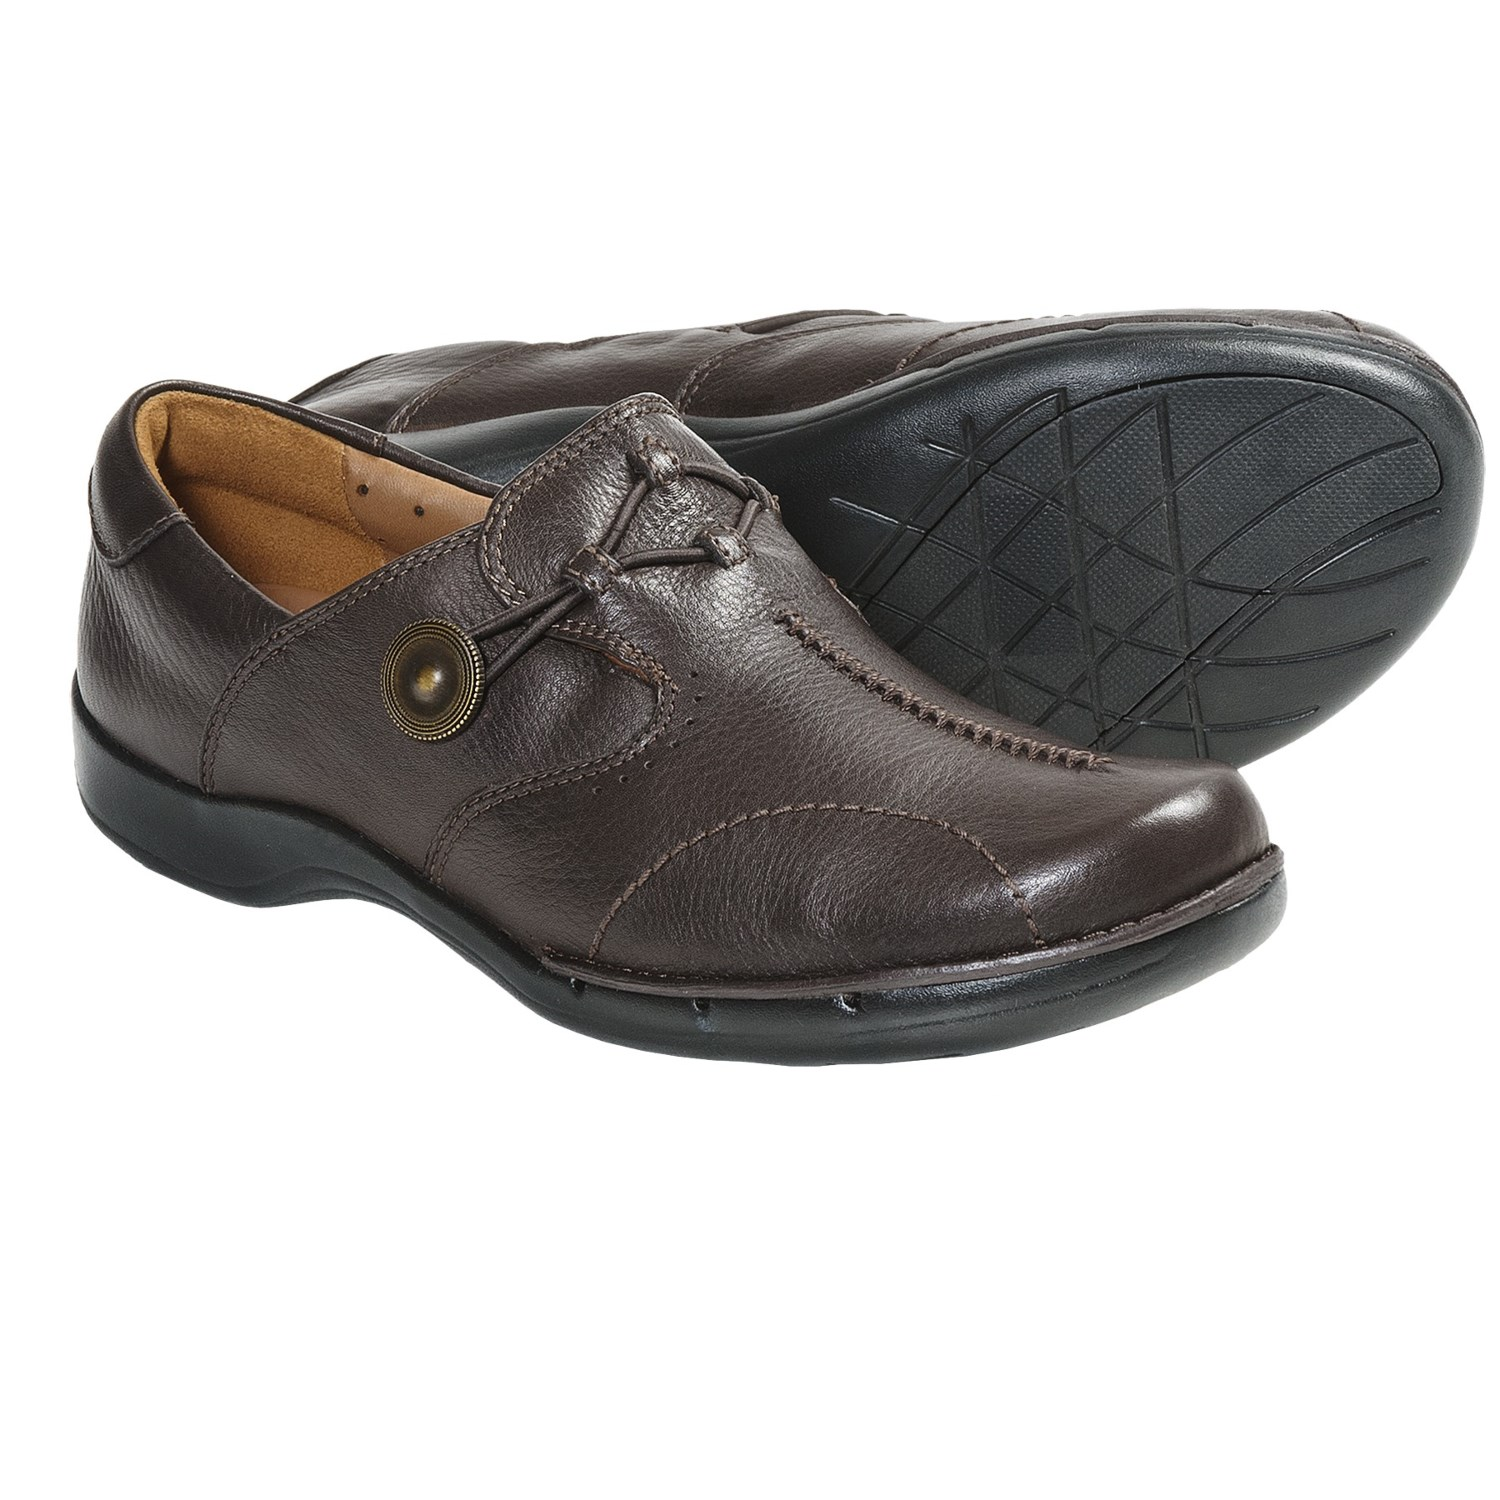 Clarks Clogs For Women Pic